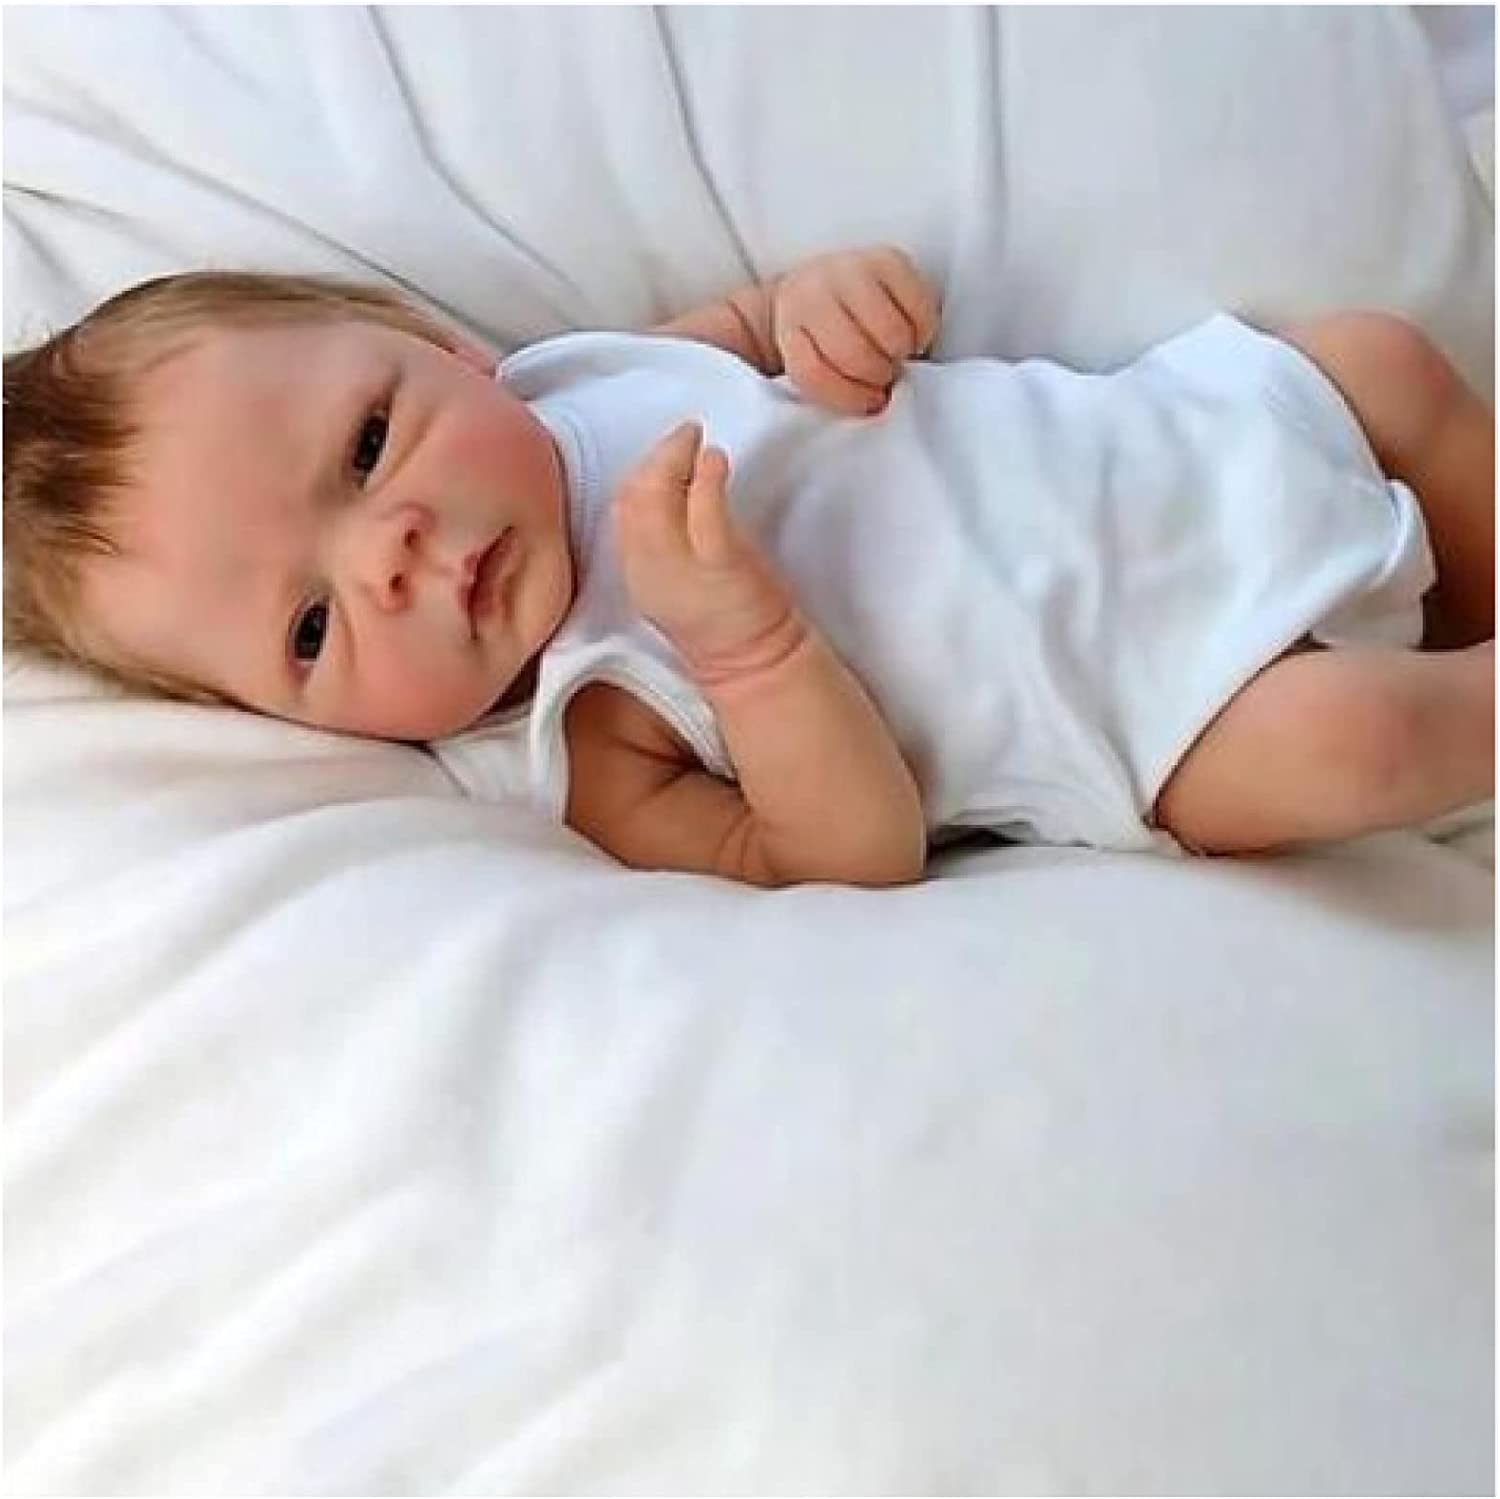 YANRU Reborn Baby Dolls 18in Doll Mail order security Look Silico Vinyl That Real -